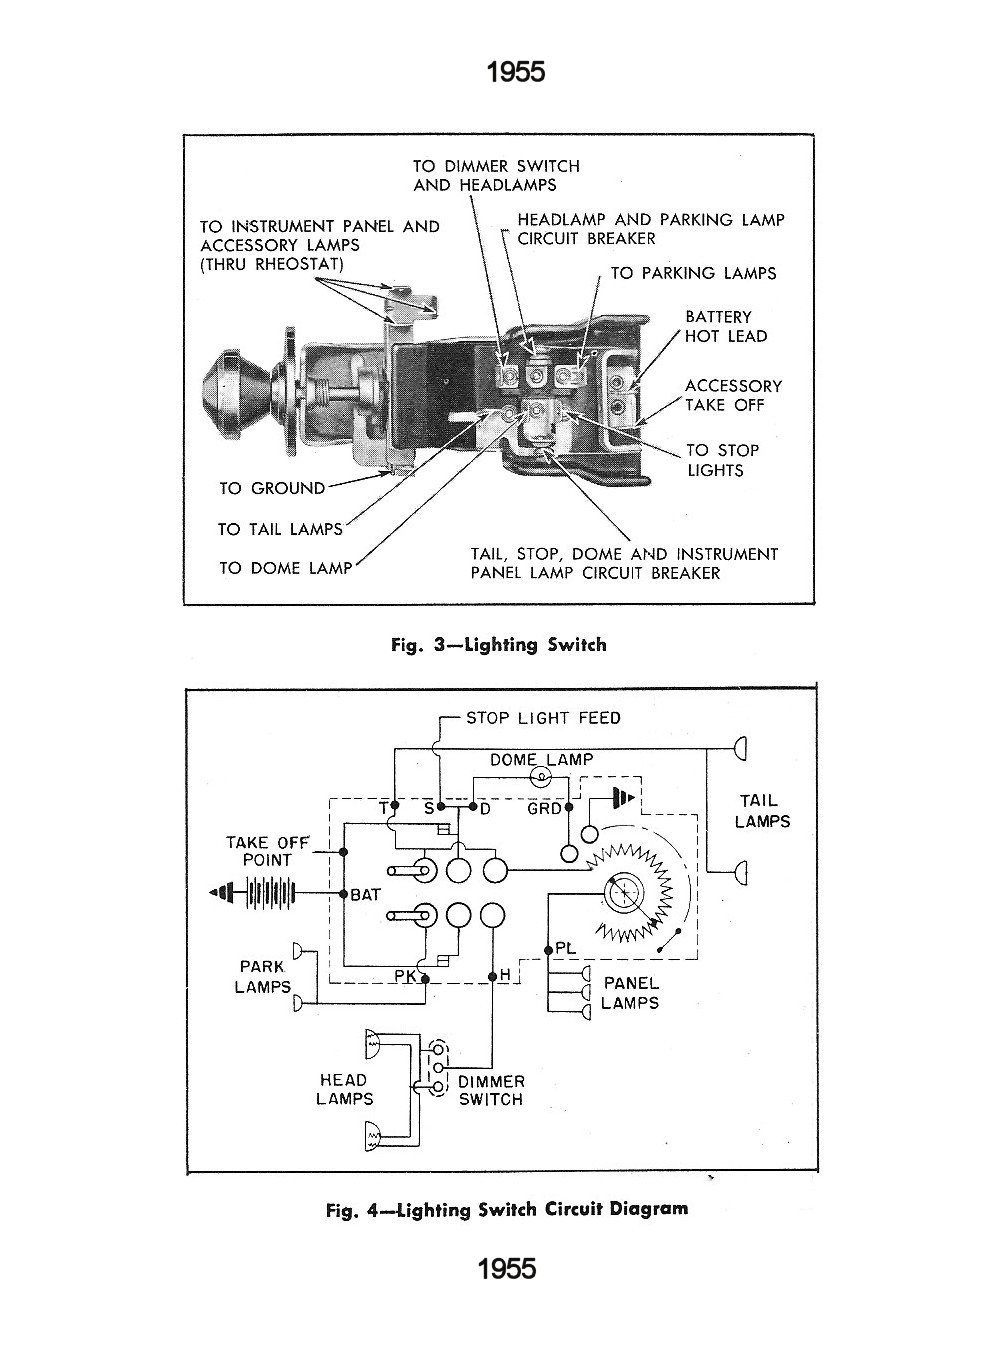 55csm1204a chevy wiring diagrams 1957 chevy headlight switch wiring diagram at fashall.co